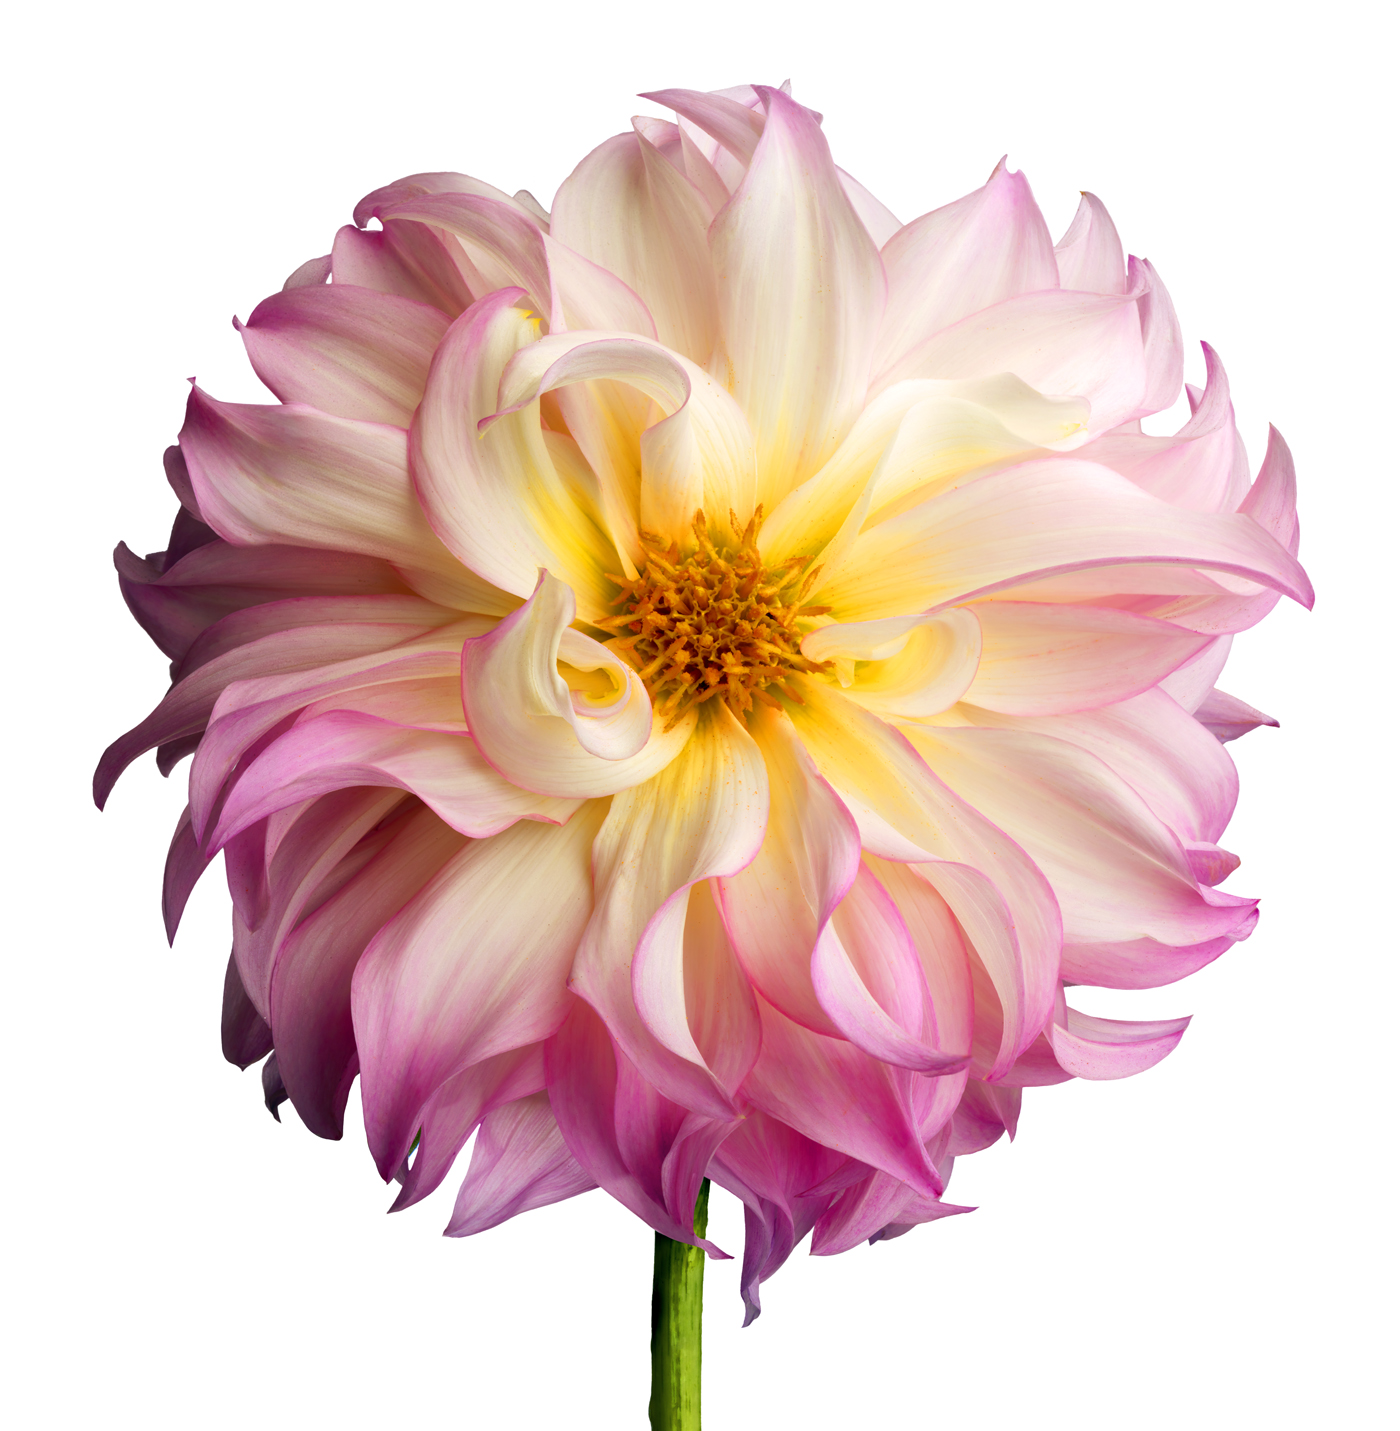 Pink and White dahlia copy 2